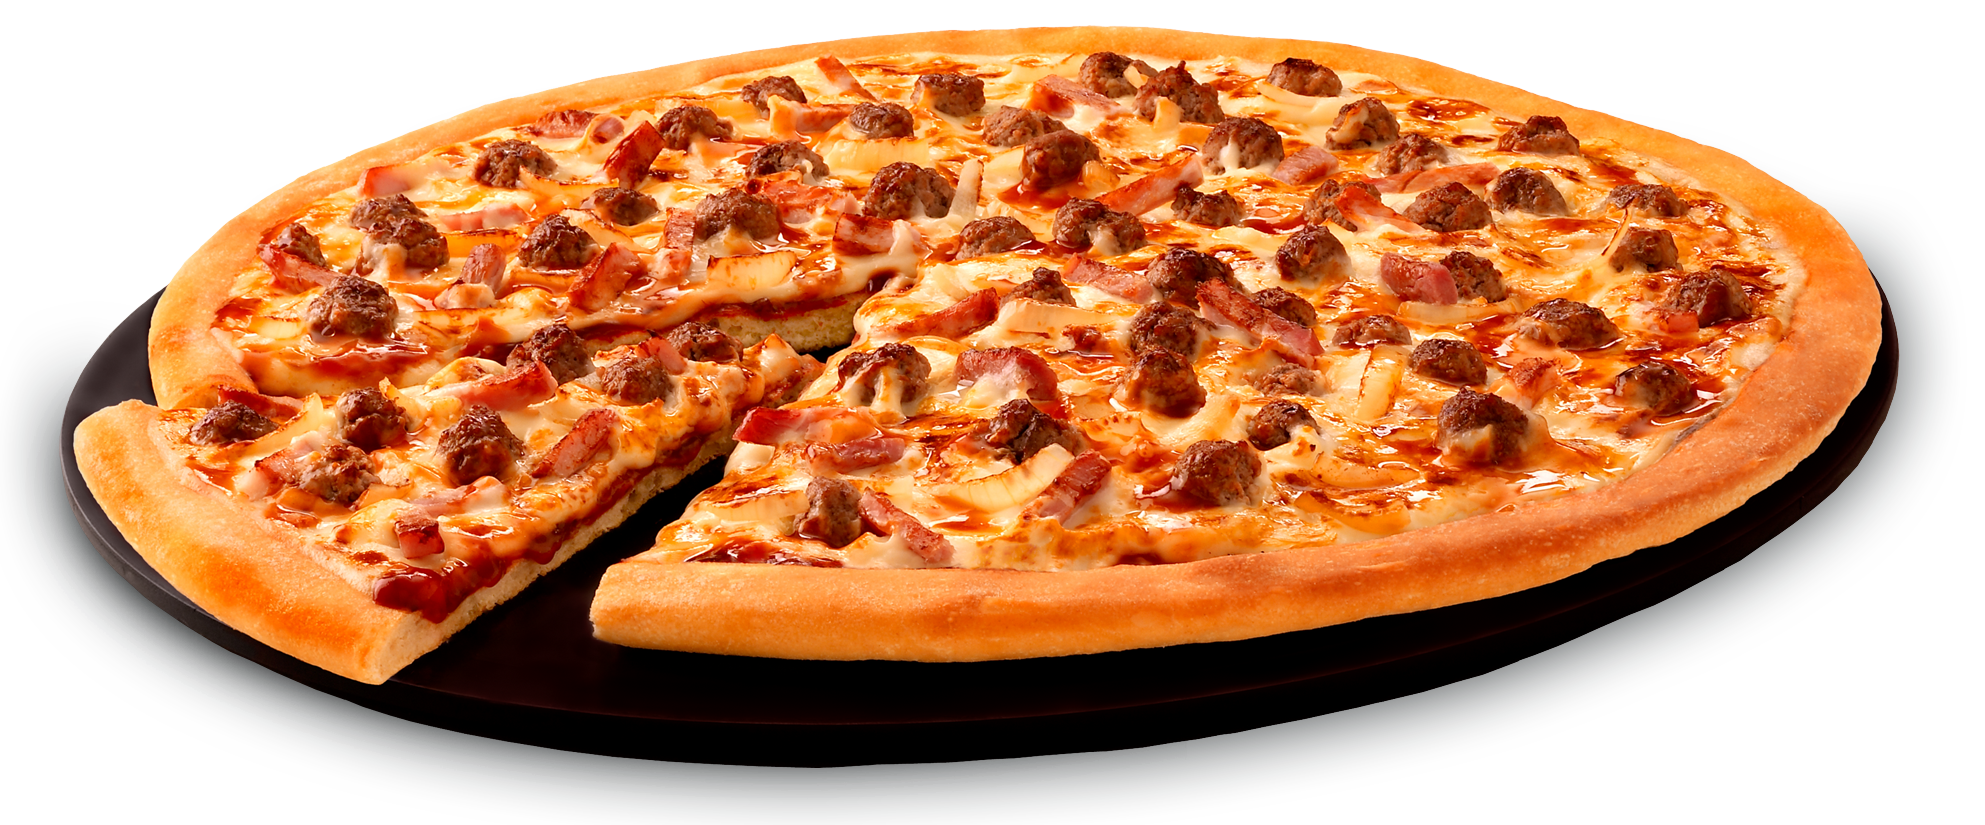 Download PNG Image: Pizza PNG Image - Pizza PNG